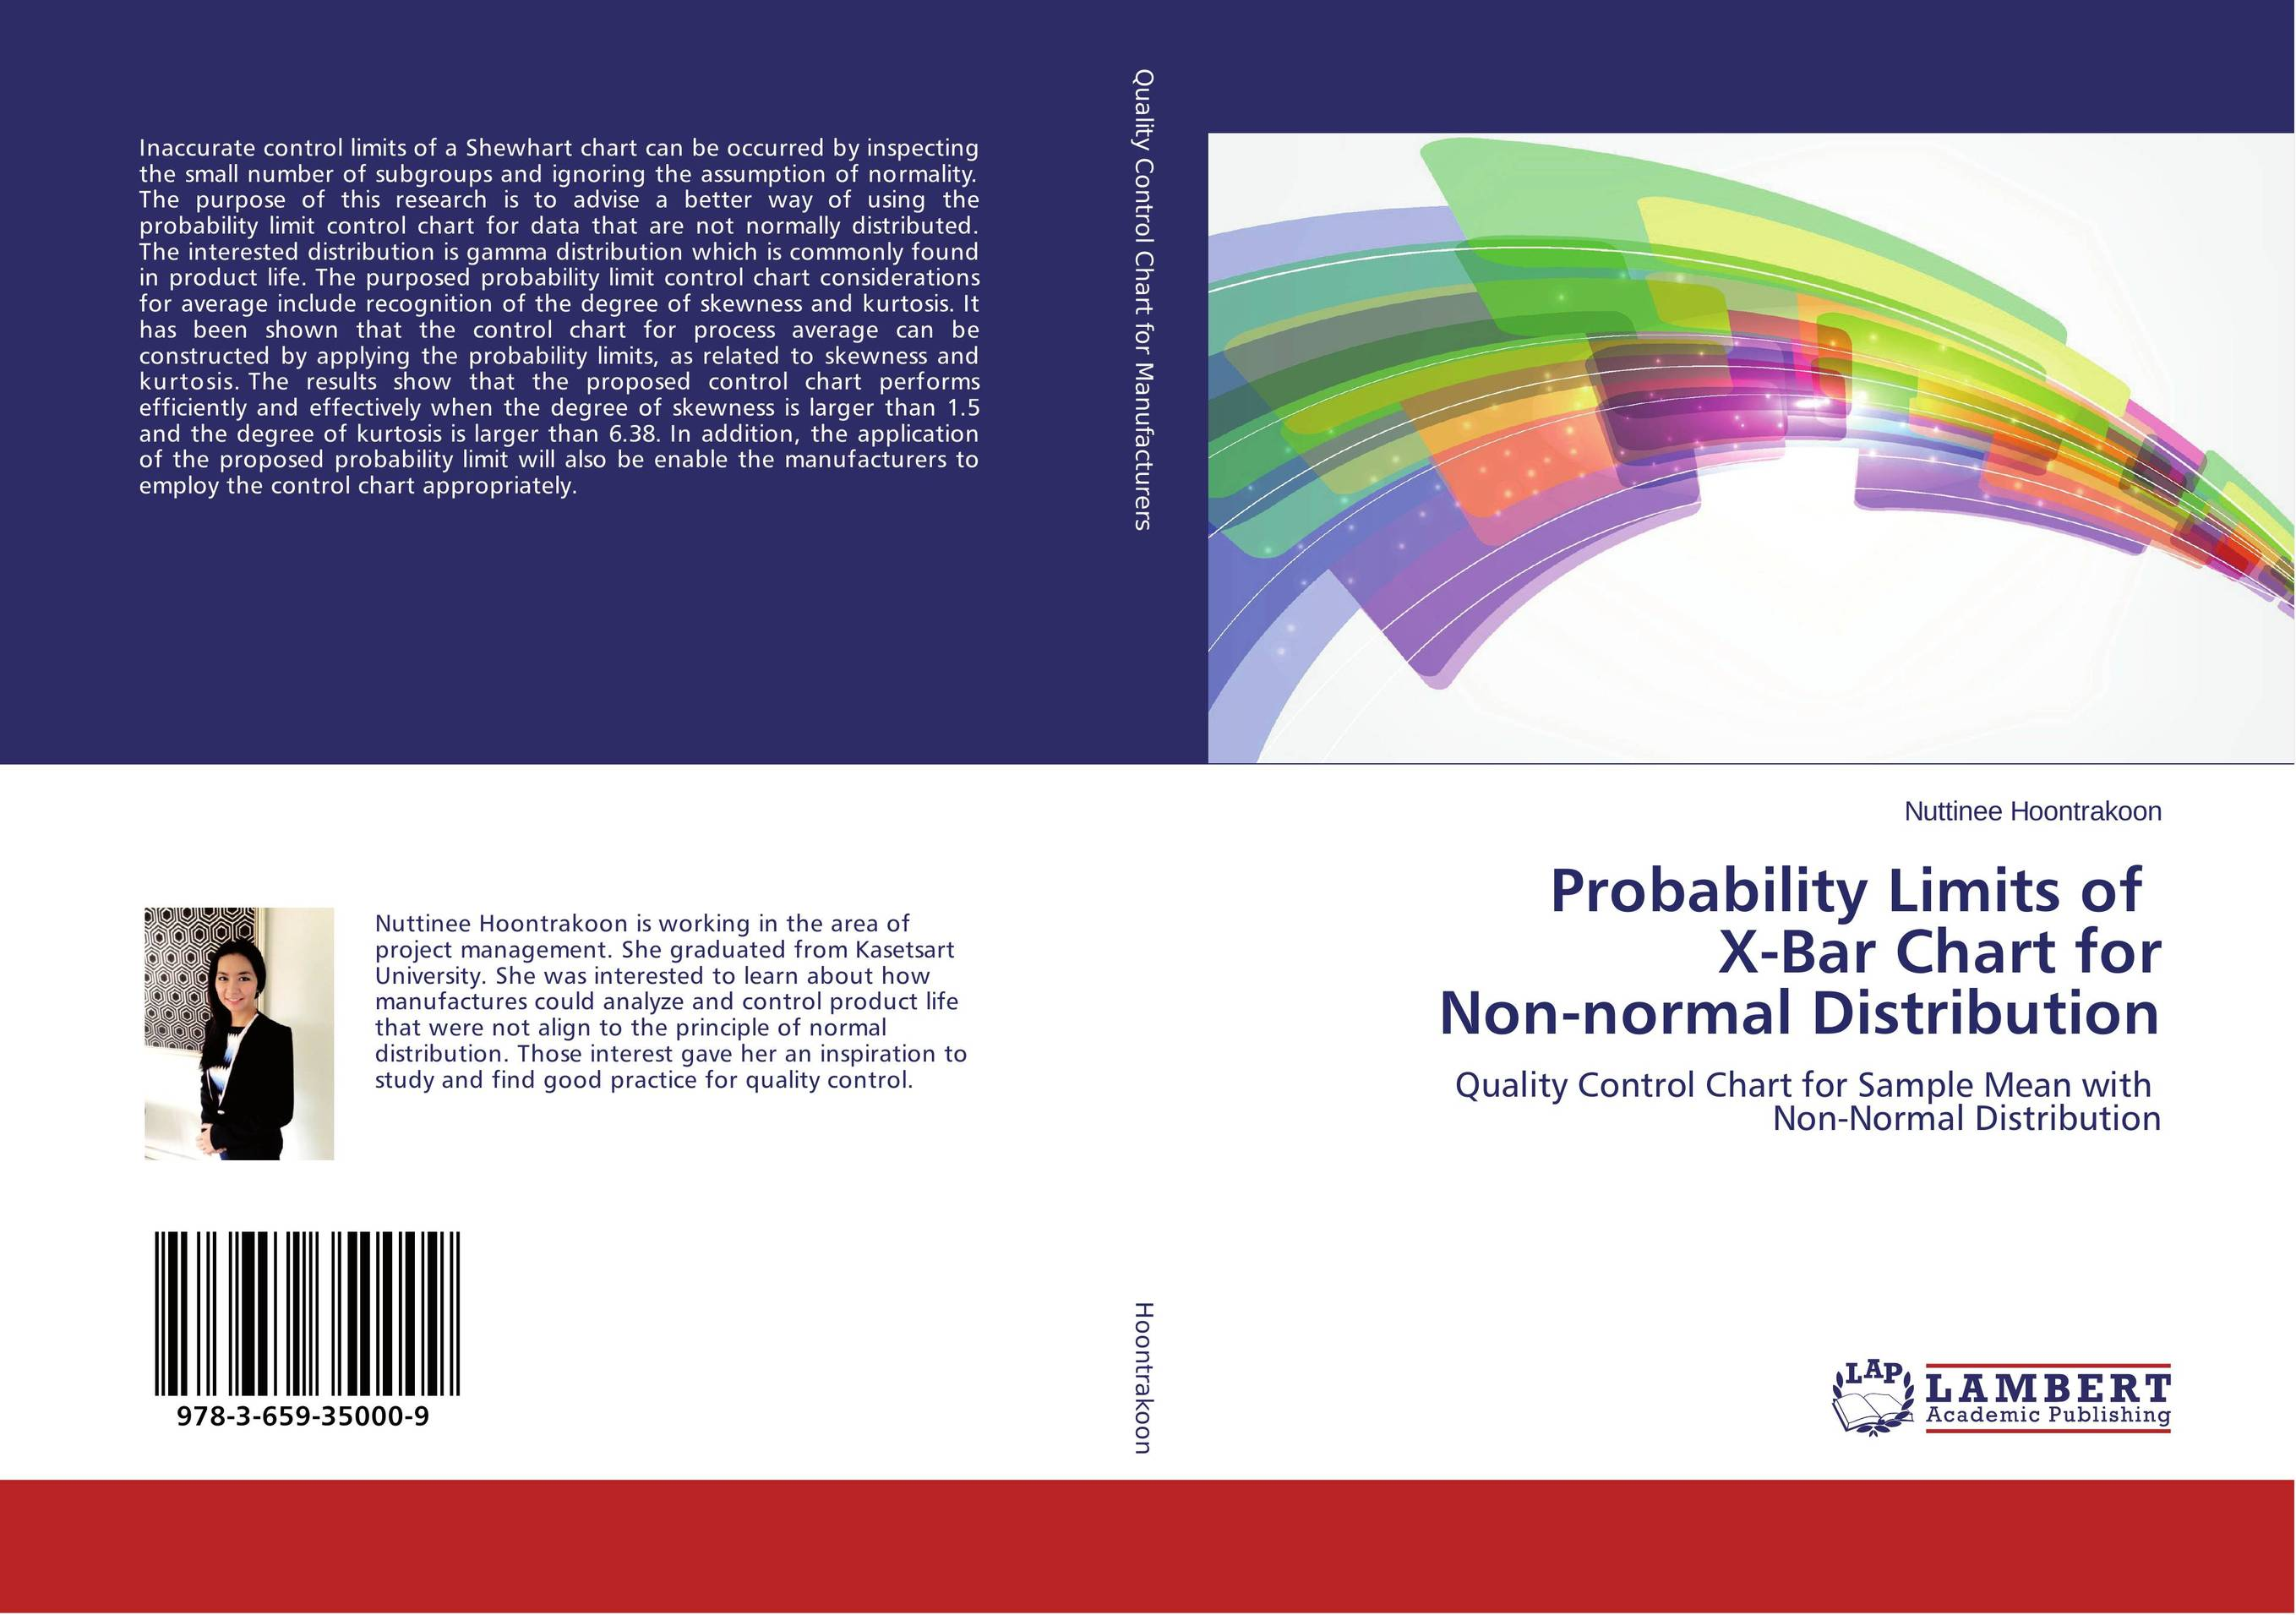 Probability Limits of X-Bar Chart for Non-normal Distribution exponentially weighted moving average control chart